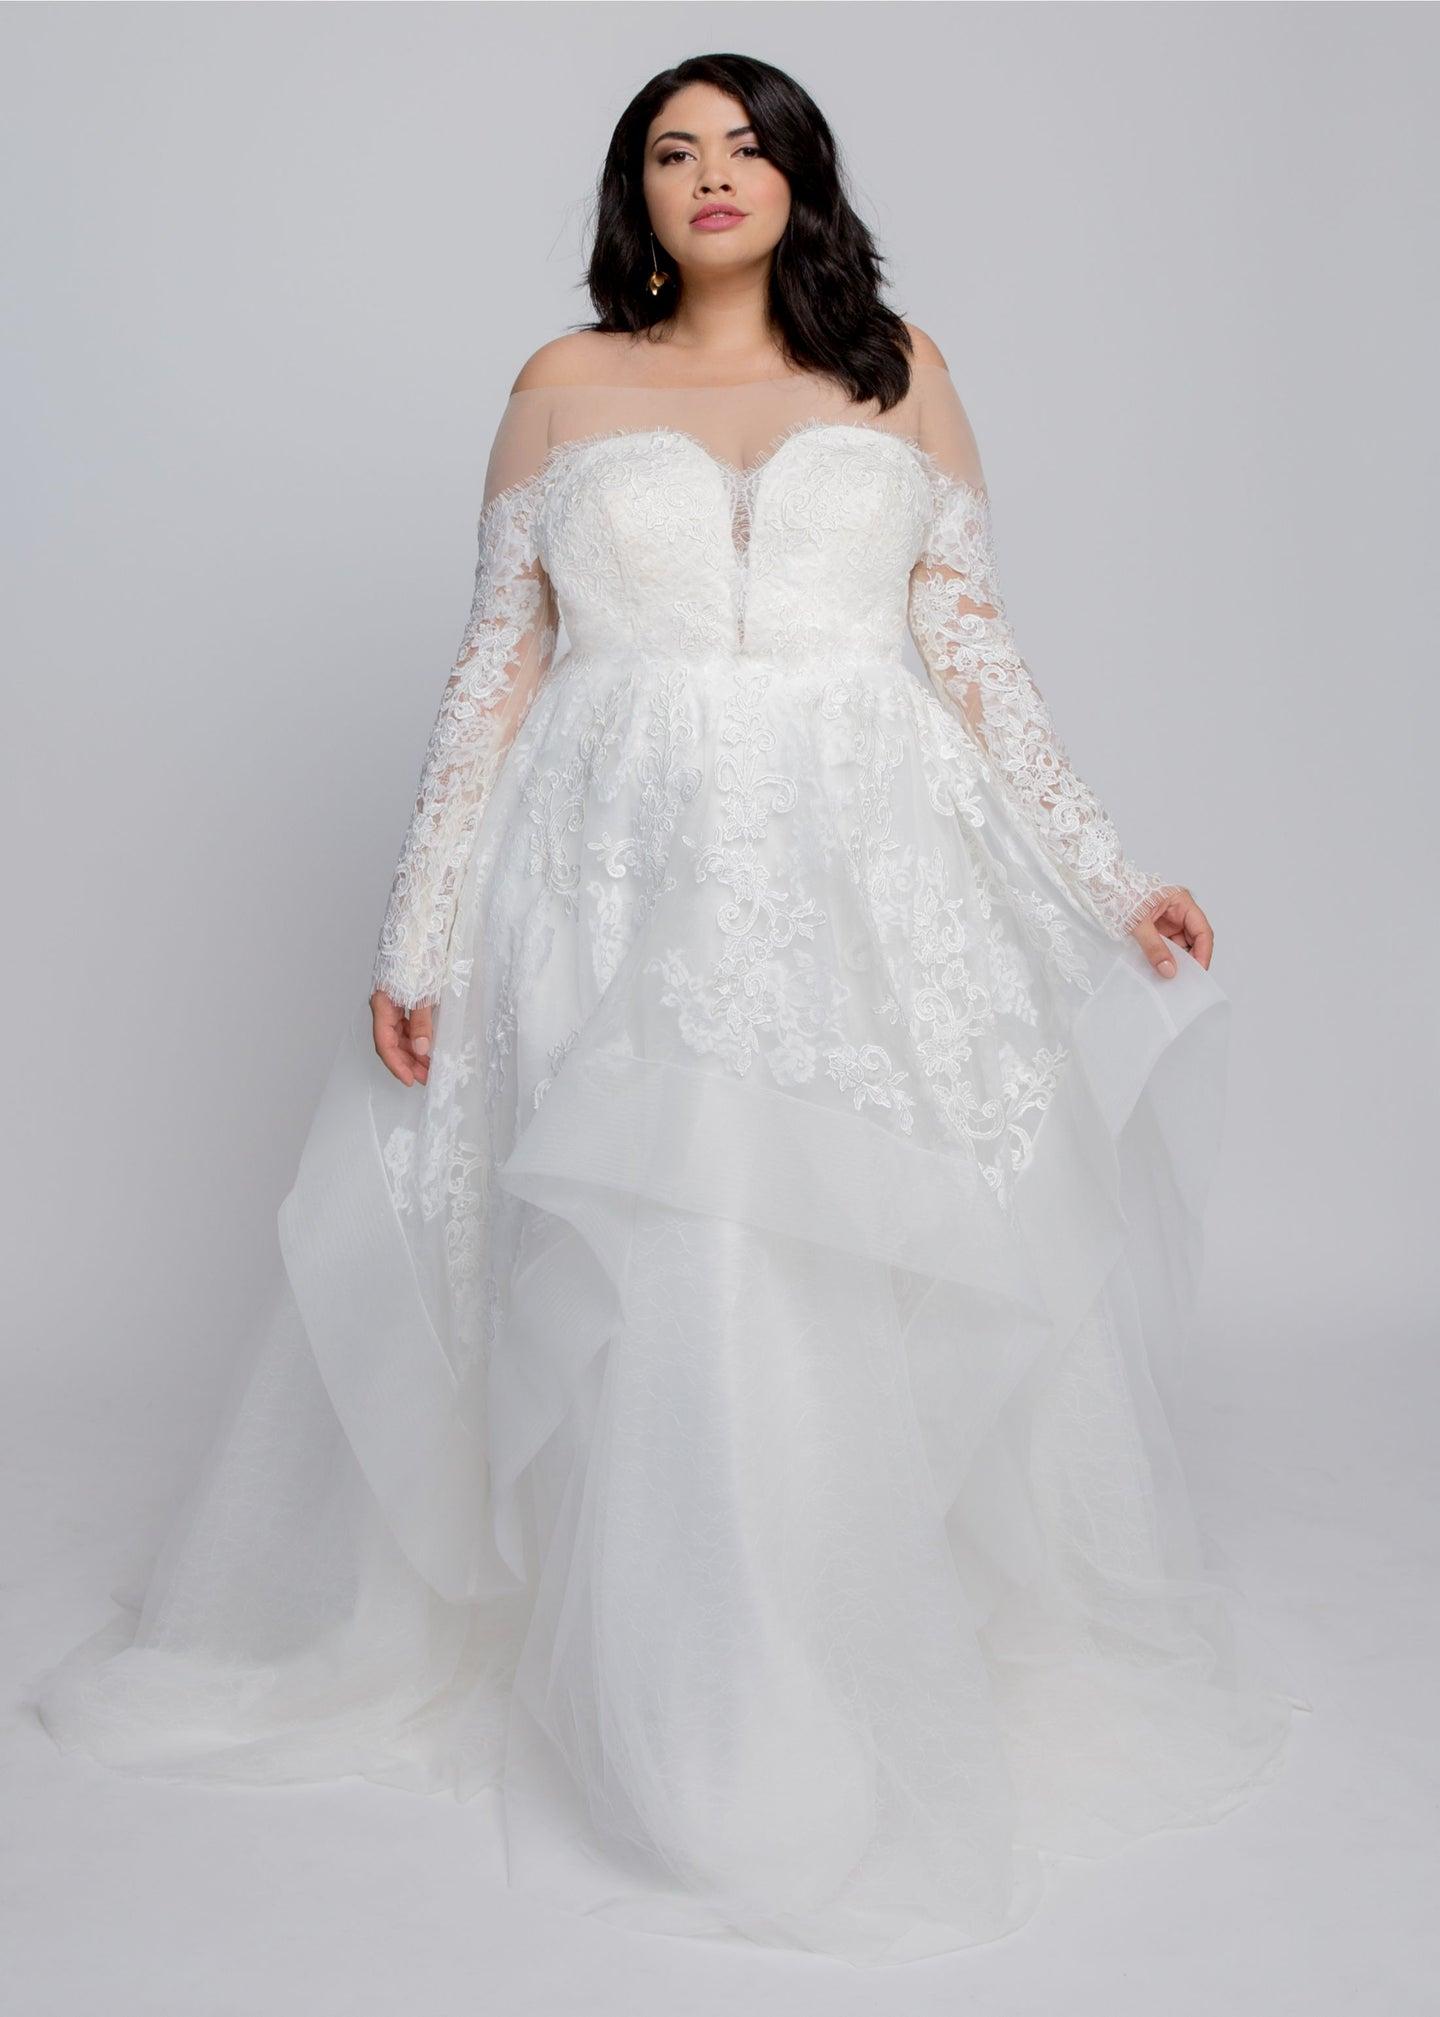 Gorgeous bridal gowns for all body shapes: plus size, curvy, or petite brides. Try on our wedding dresses at home. Size 0-30. Comfortable. Convenient. Fun. Lace or satin. Mermaid or A-line.  The Emmy Gown will allow you to glide down the aisle in soft and gorgeous layers of tulle and romance. The illusion off the shoulder silhouette and lace is a perfect pairing that will keep you feeling secure, comfortable, and beautiful. The layered lace and tulle of this ball gown skirt adds an ethereal statement.